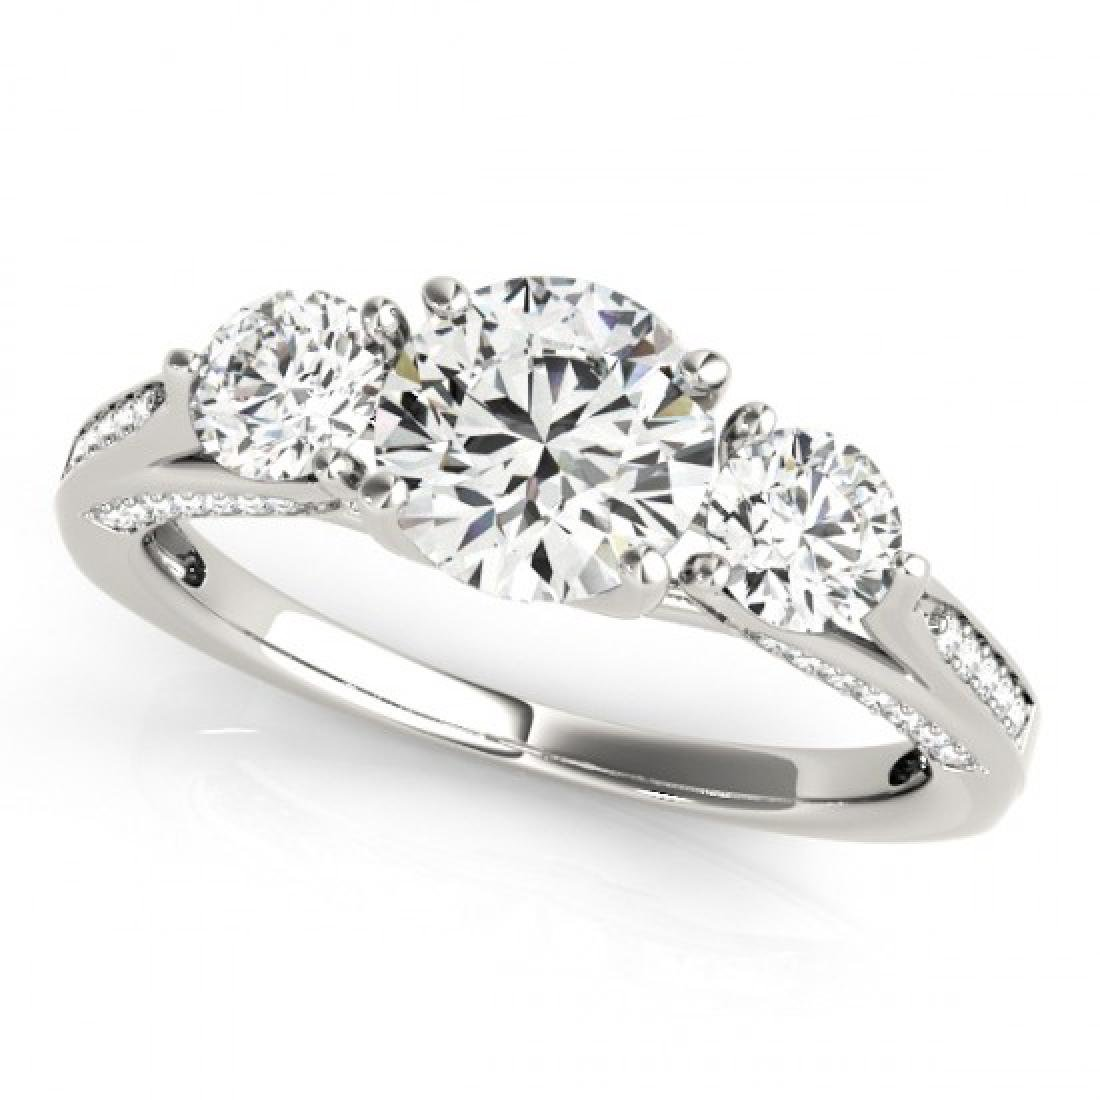 1.75 CTW Certified VS/SI Diamond 3 Stone Ring 14K White